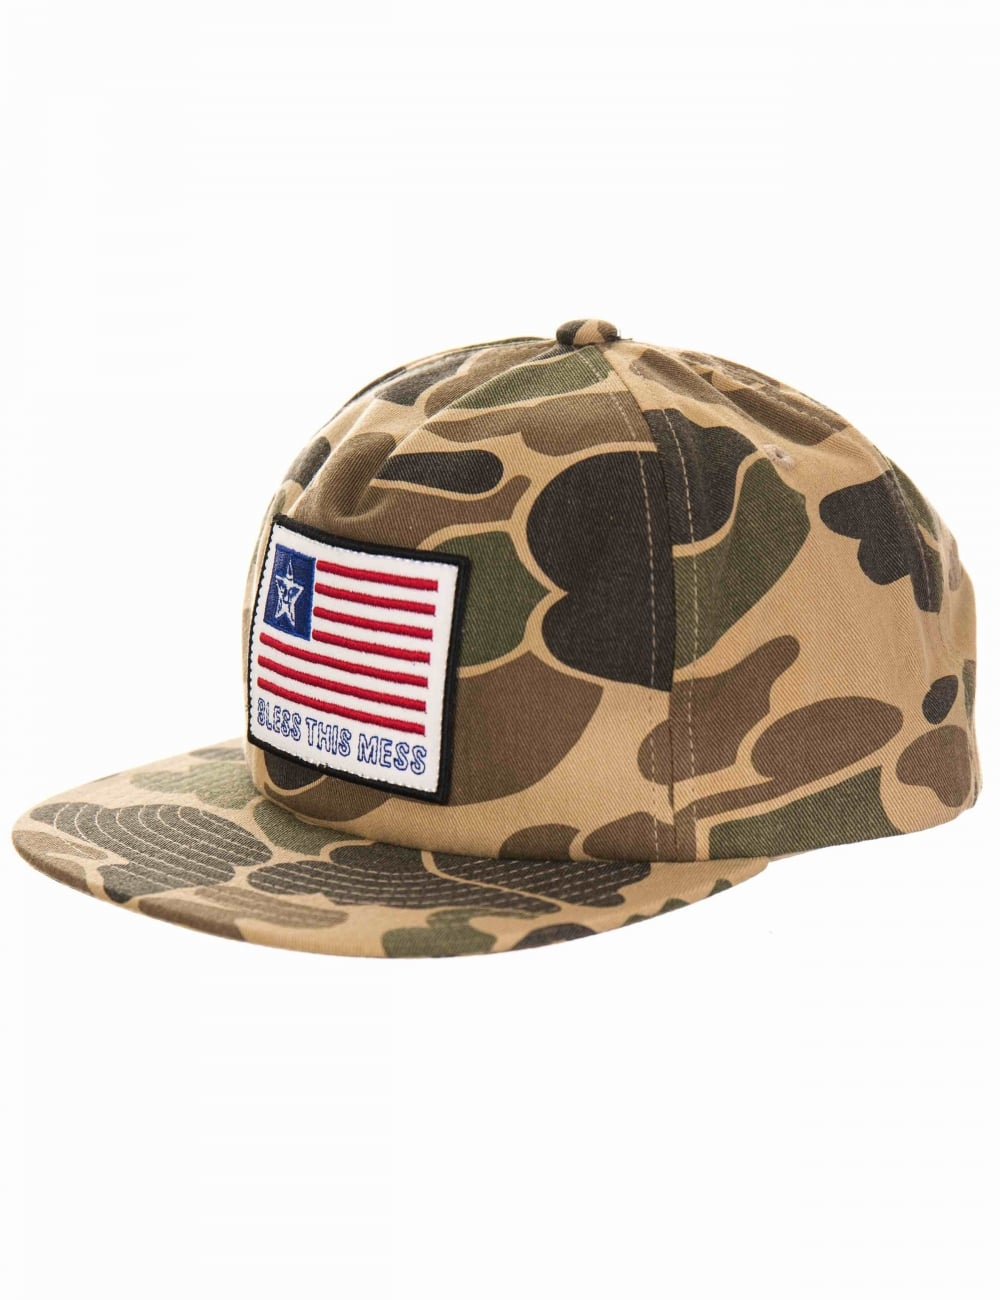 6630d4e10a3 Obey Clothing Bless Snapback Hat - Camo - Accessories from Fat ...